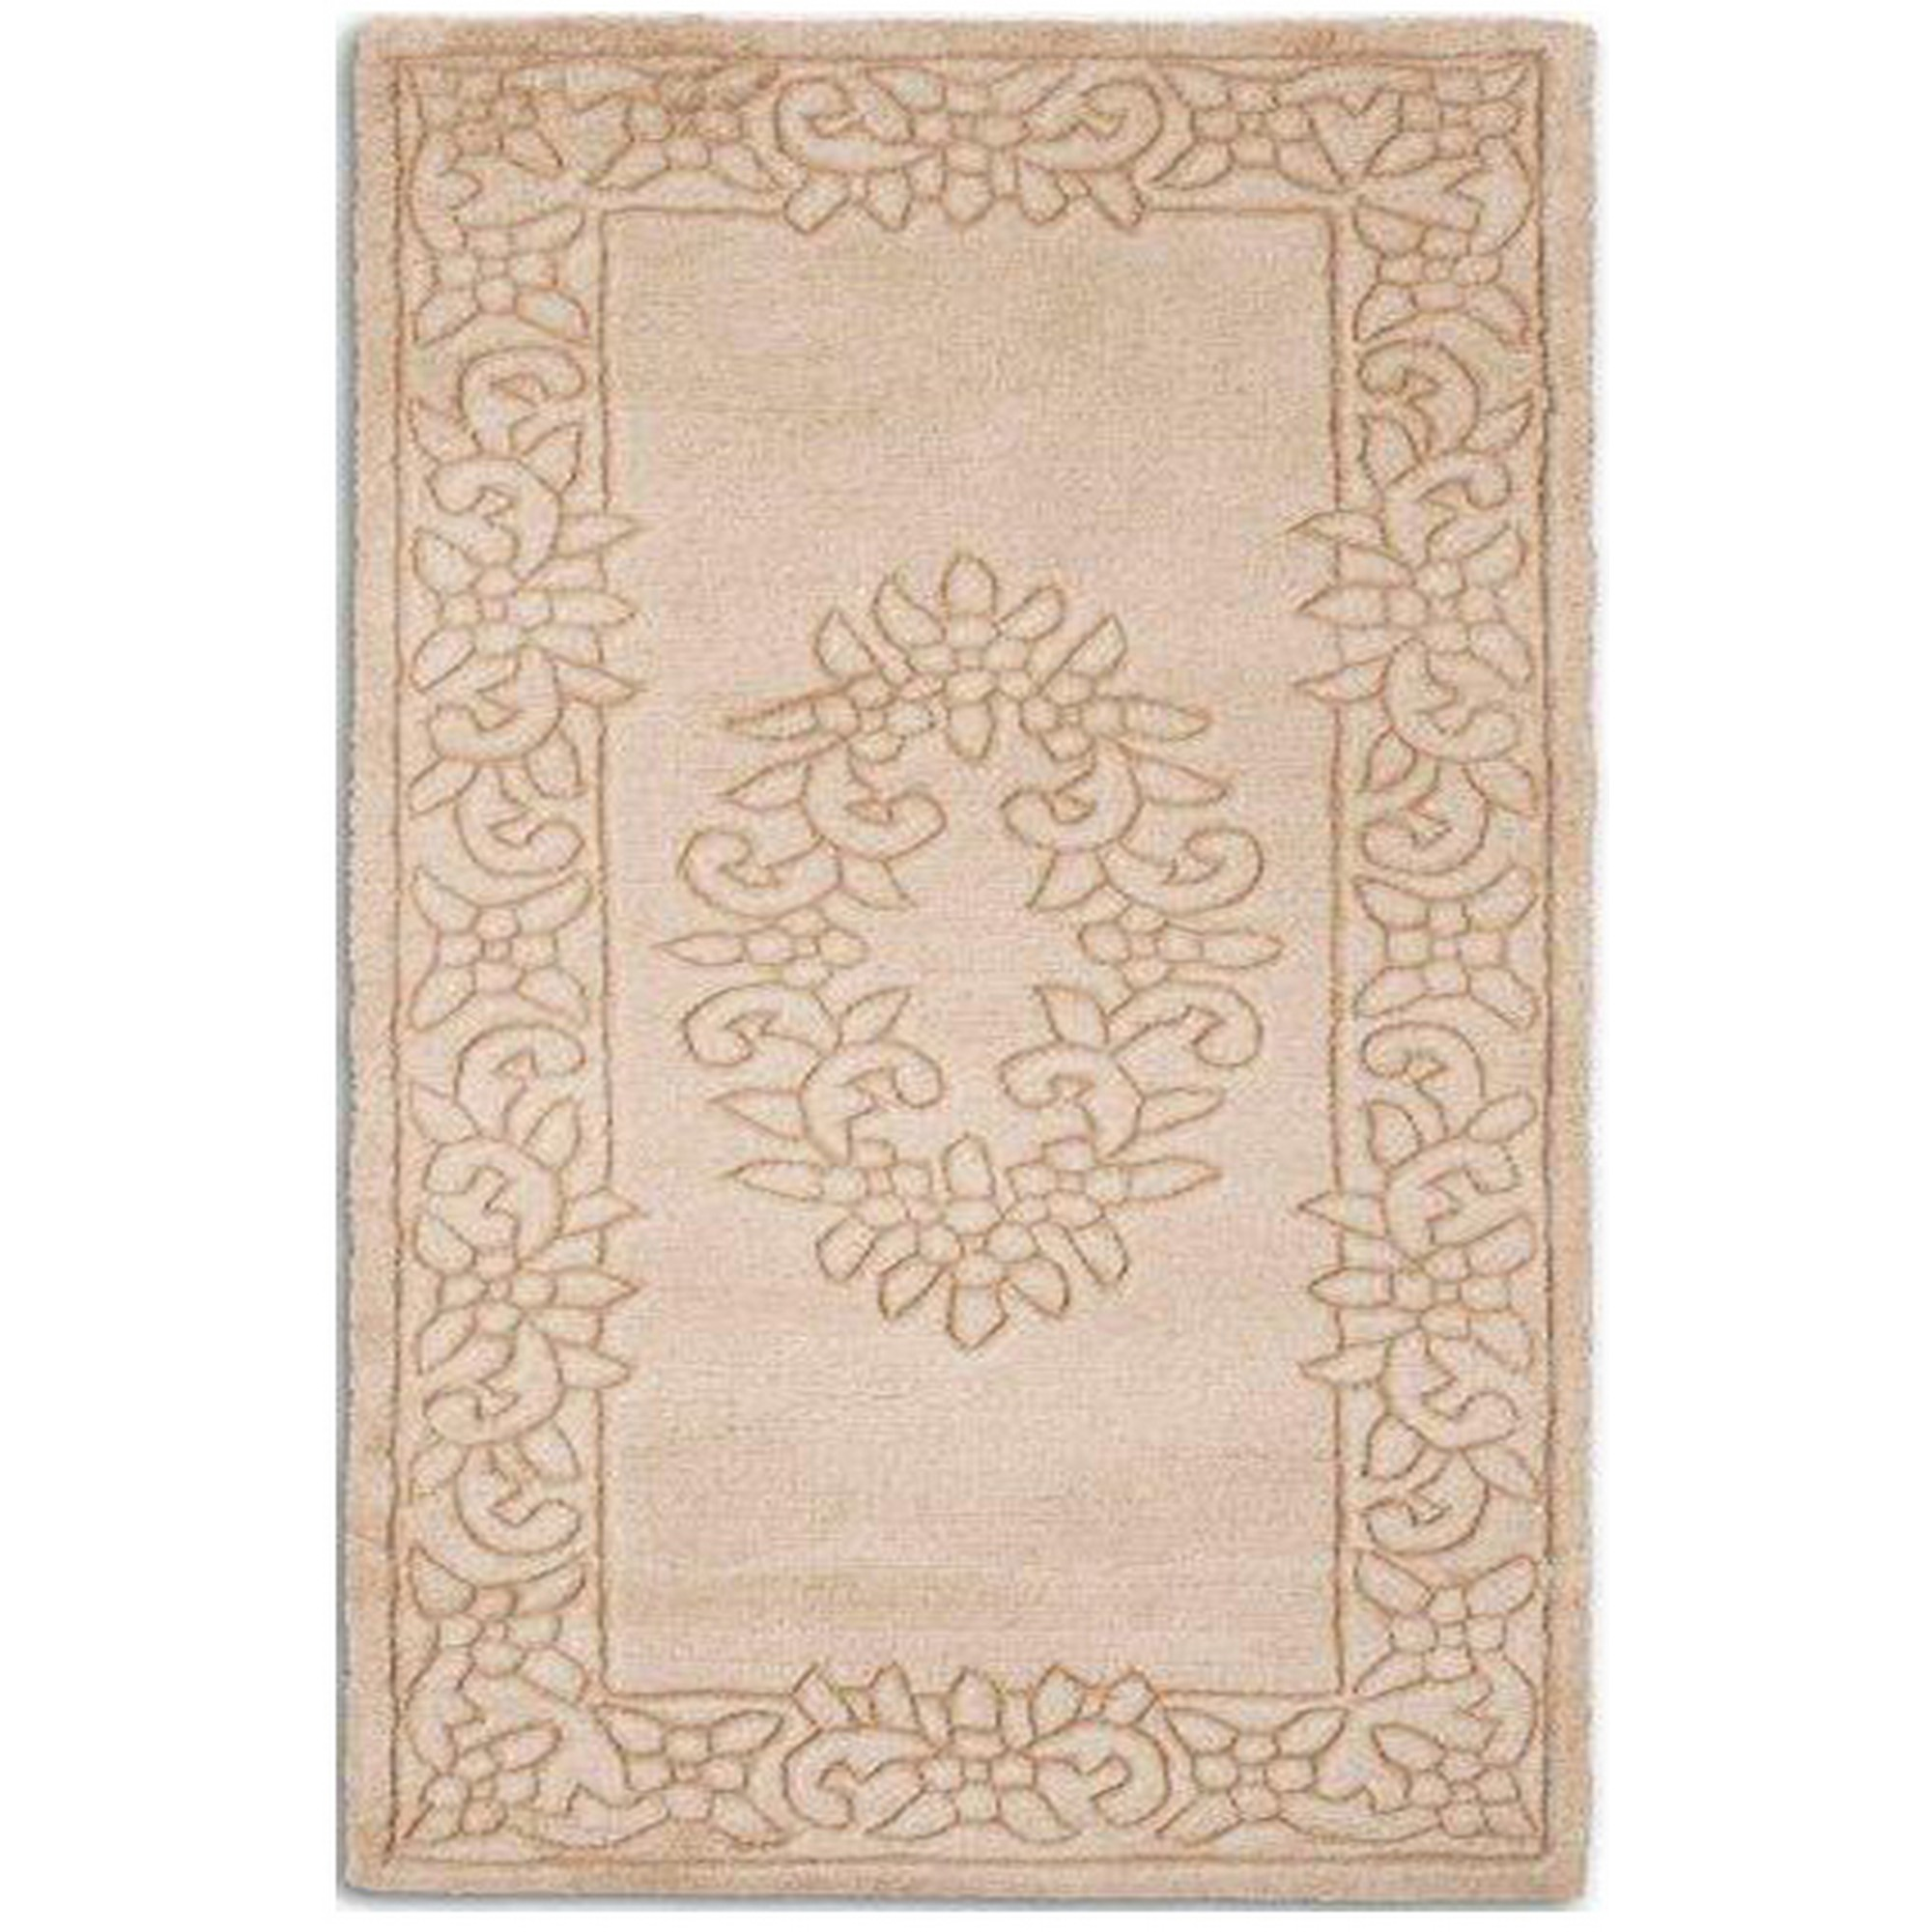 Royale Rugs - Traditional Indian Wool in Camel